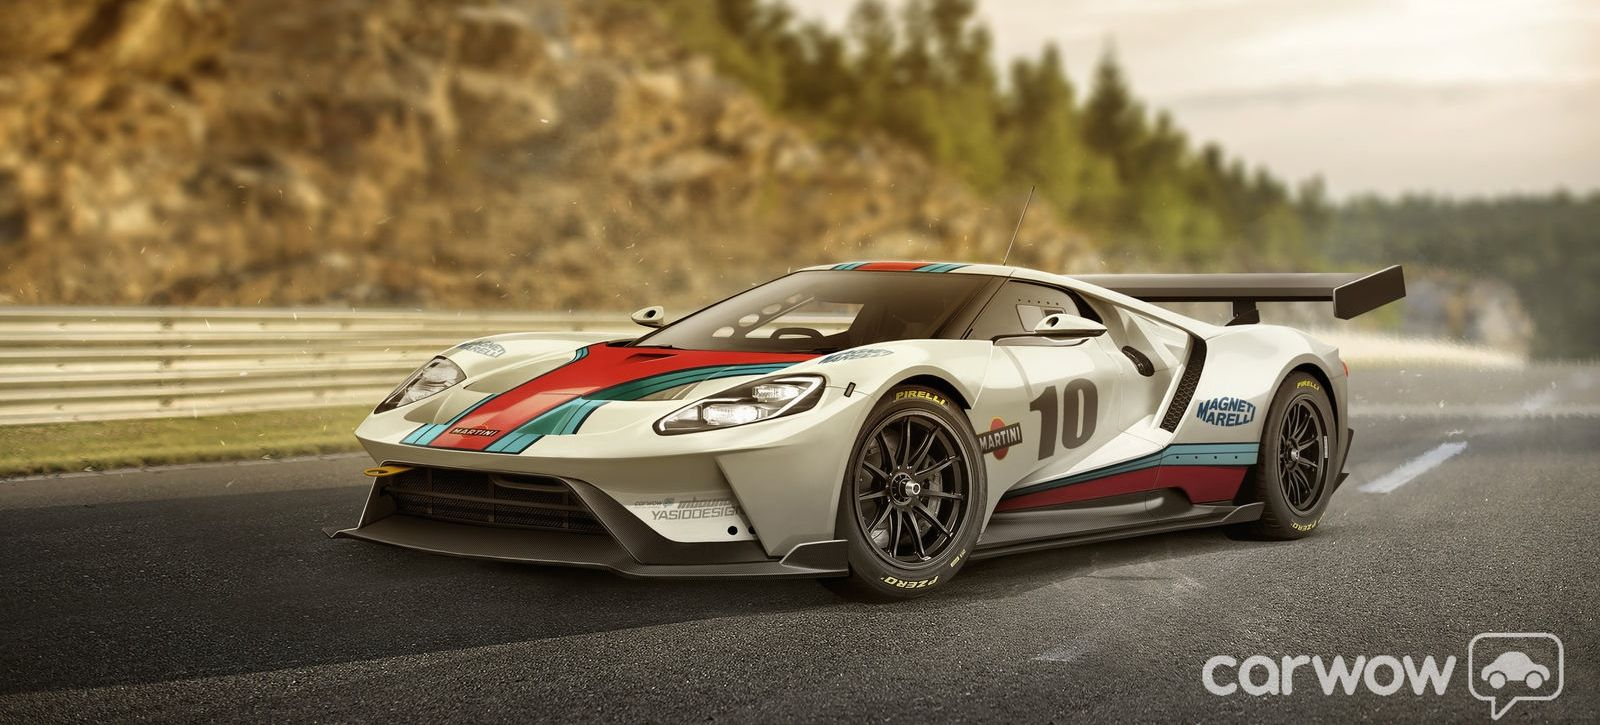 Here S A Ford Gt Race Car With A Martini Livery Ford Gt Super